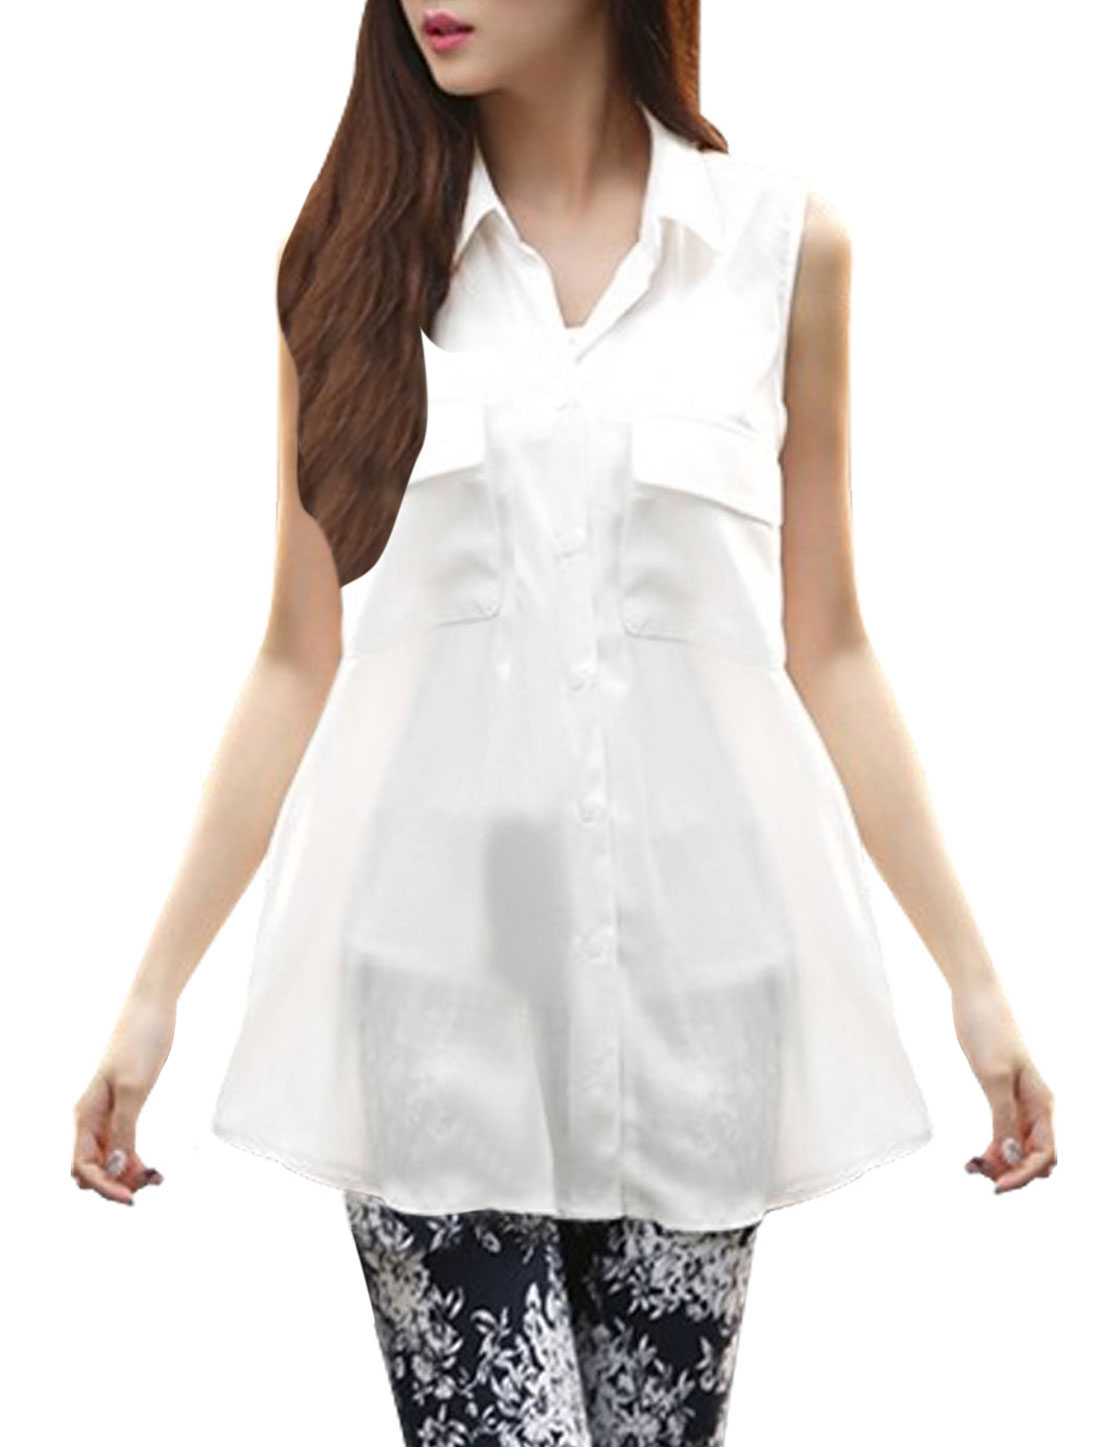 Women Single Breasted Semi Sheer Stylish Chiffon Tunic Shirt White S